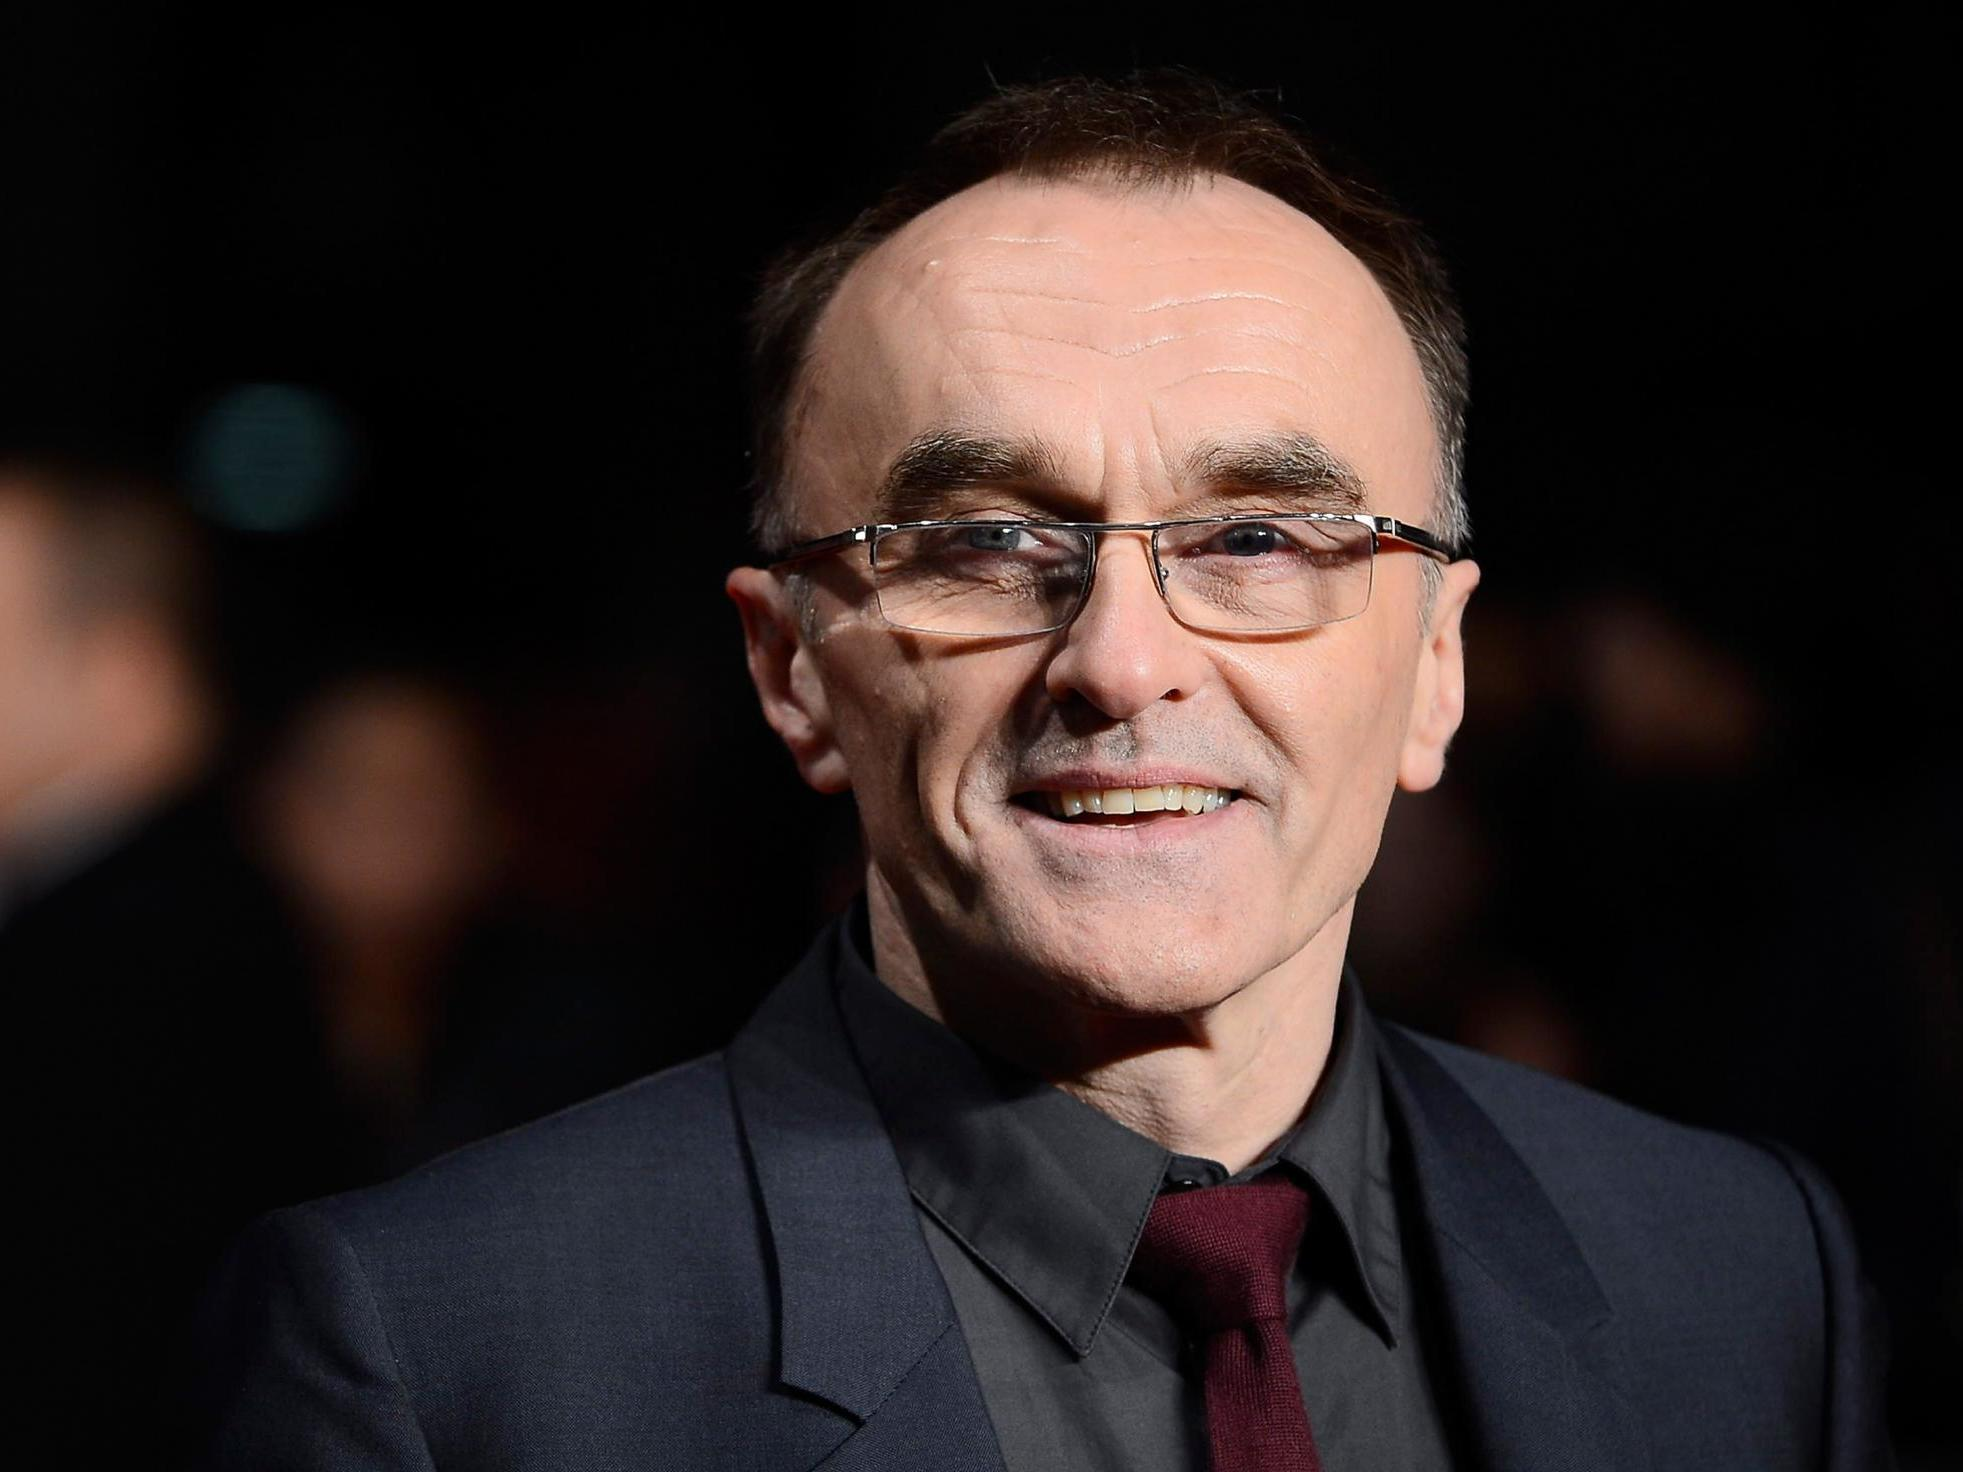 Danny Boyle: 'I'd feel like an imposter if I made a film with a fema…